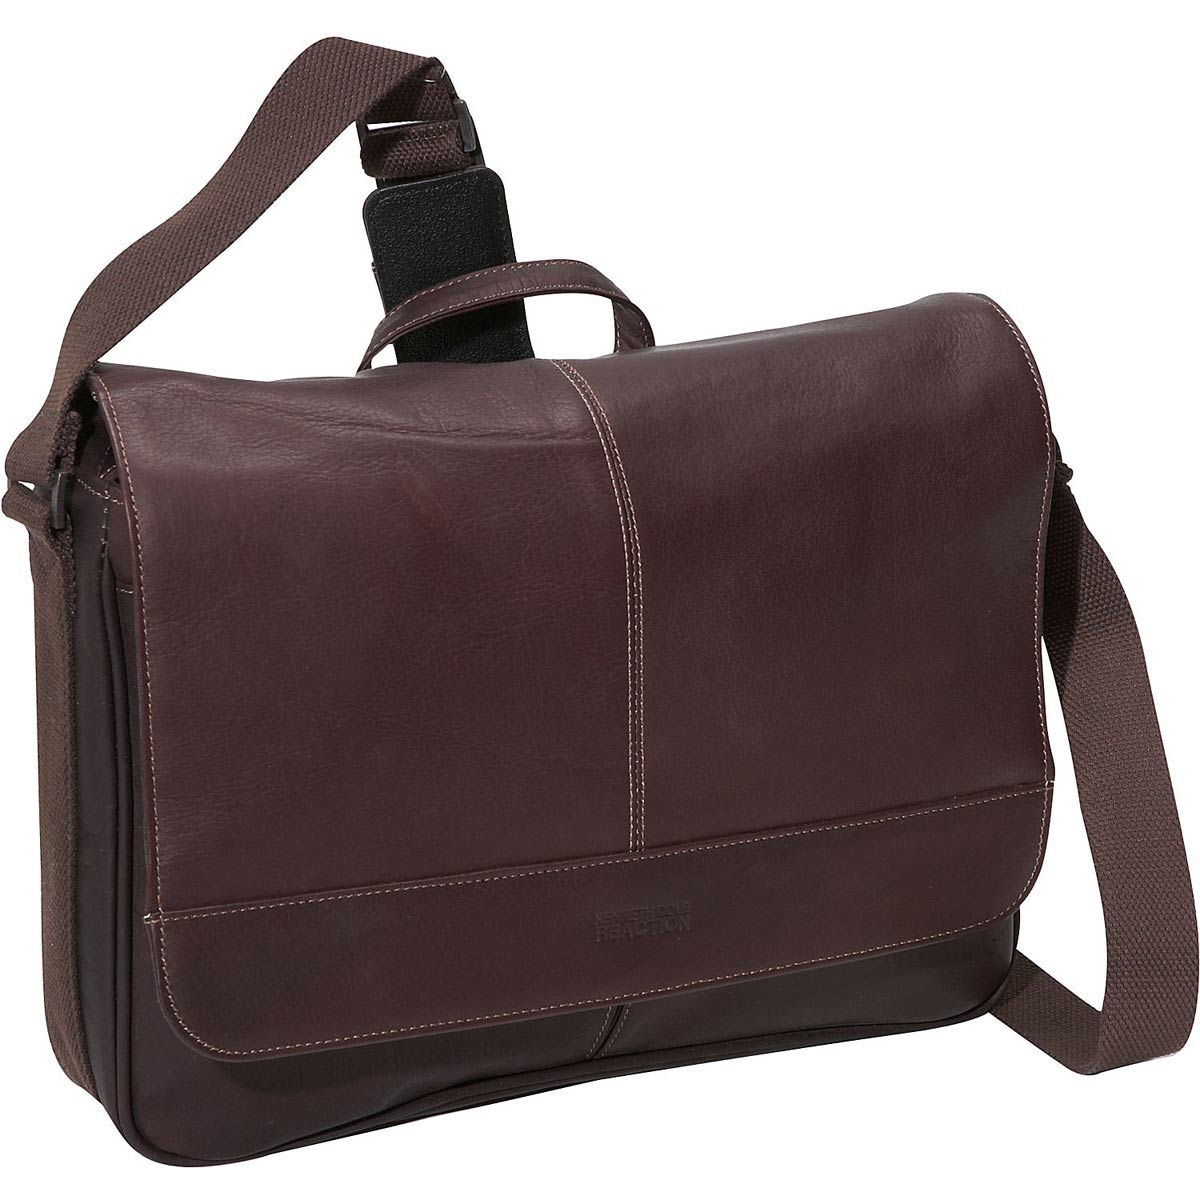 "Kenneth Cole Reaction ""Risky Business"" Single Gusset Flapover Messenger Bag"